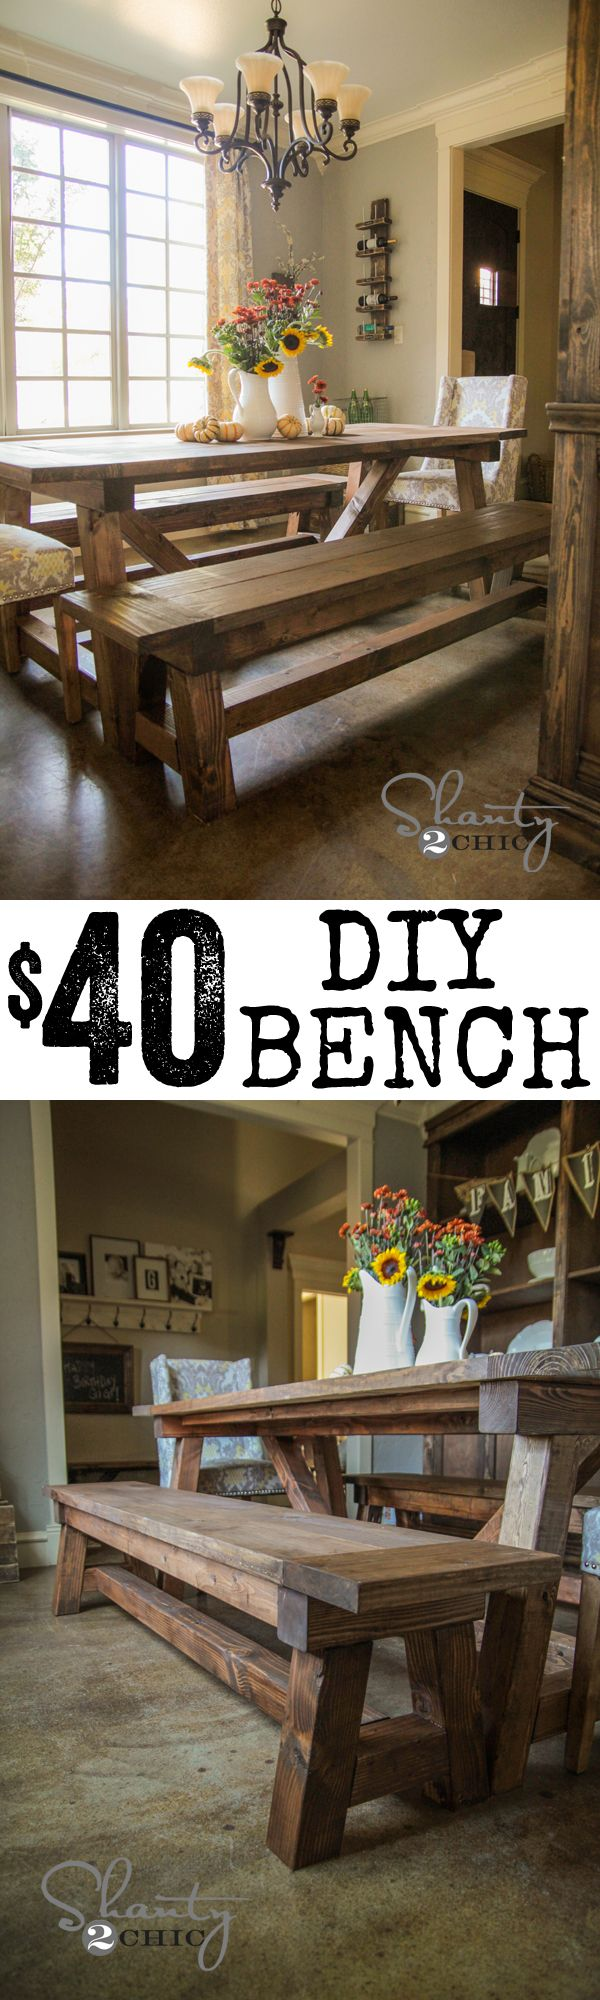 DIY Bench and Dining Table!  Beautiful and cheap